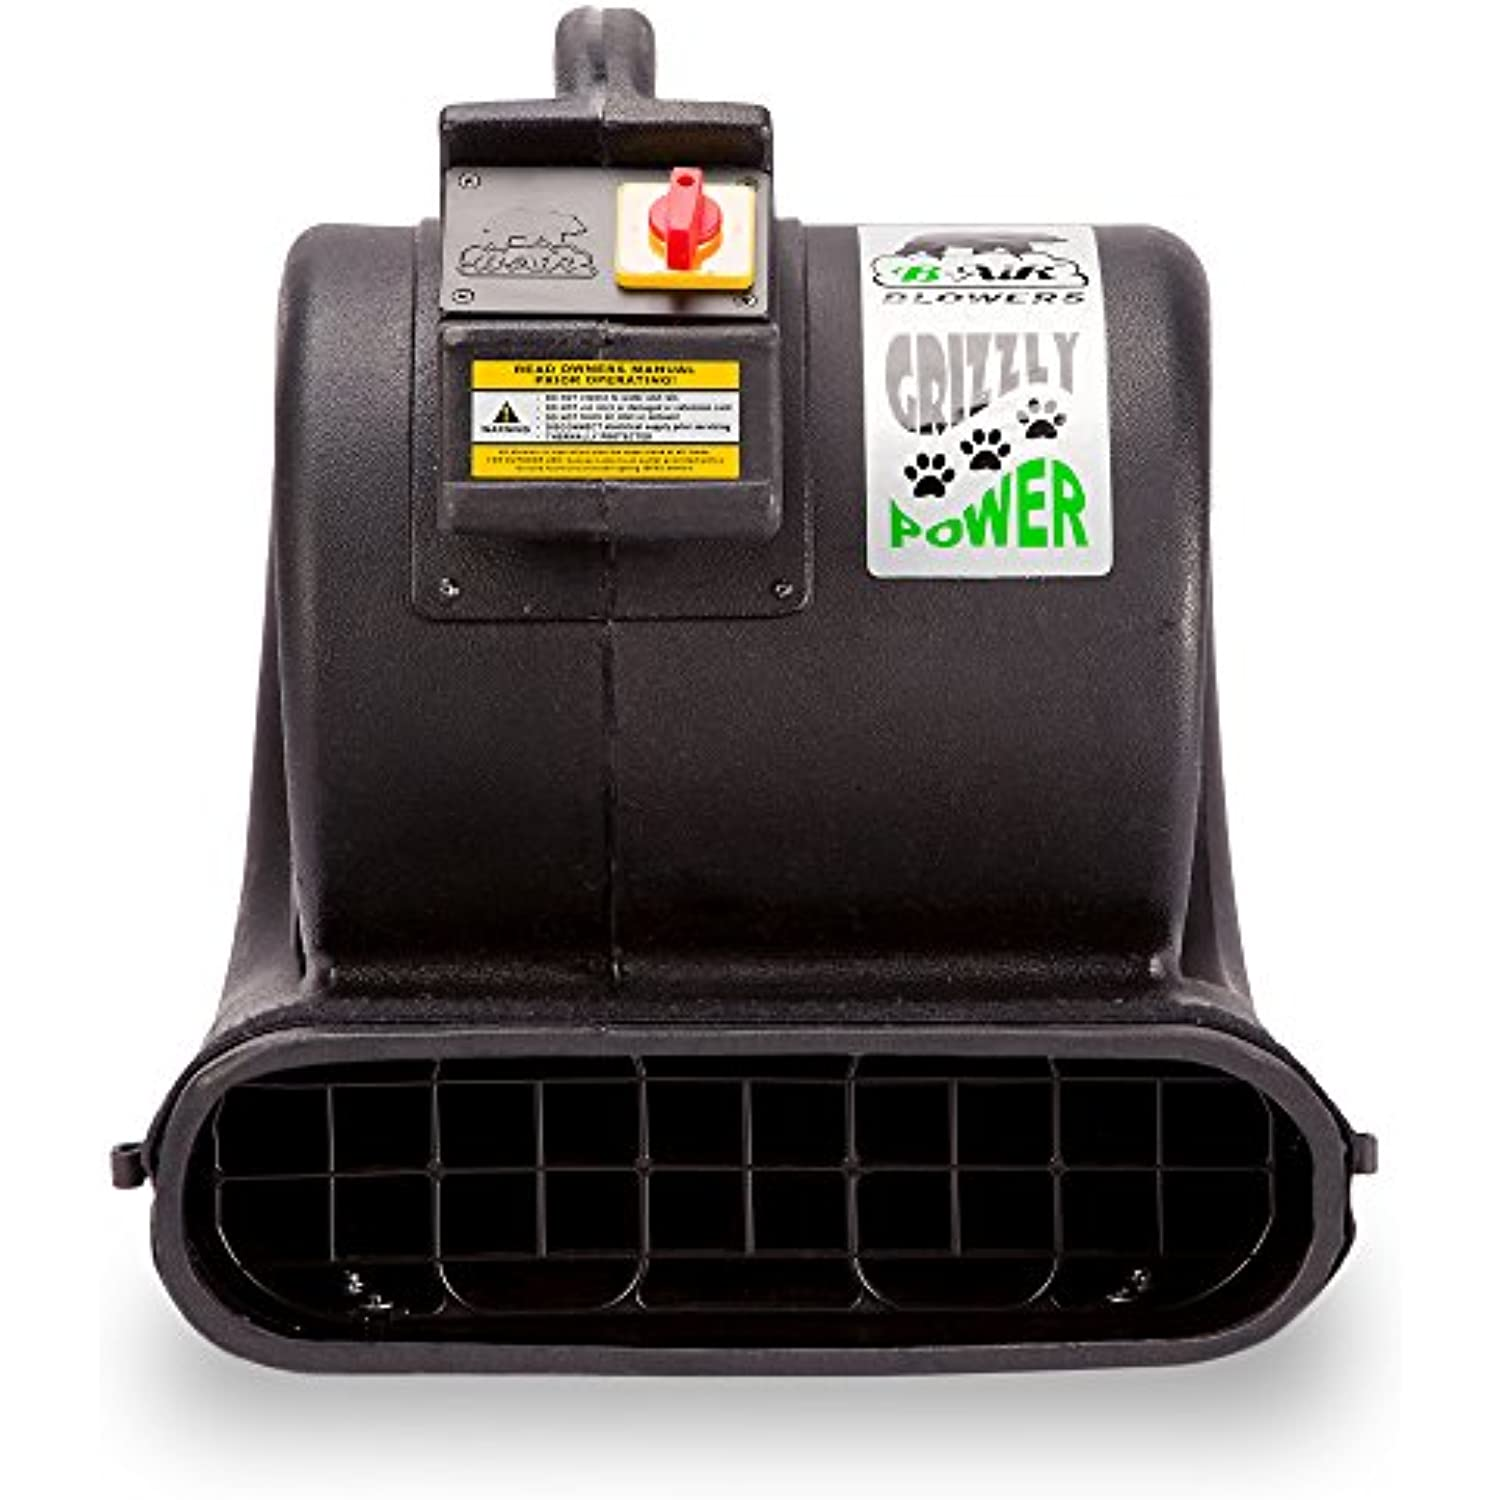 B-Air Grizzly GP-1 1 HP 3550 CFM Grizzly Air Mover Carpet Dryer Floor Fan for Water Damage Restoration and Pet Cage Dryer Black